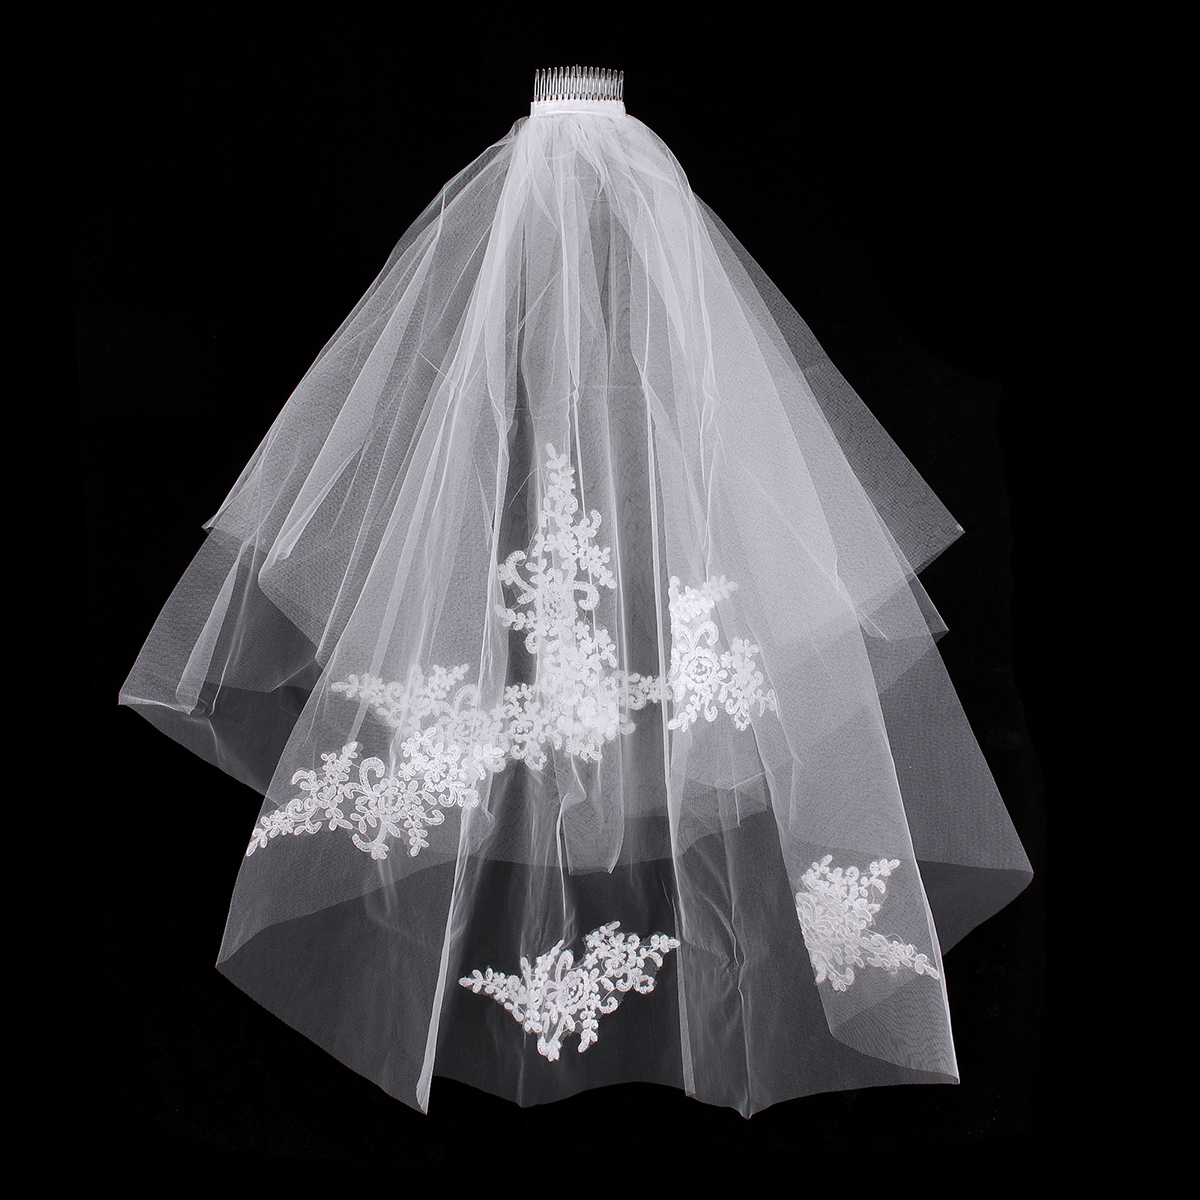 2 Layers Bride White Ivory Flower Embroidery Bridal Veil With Comb